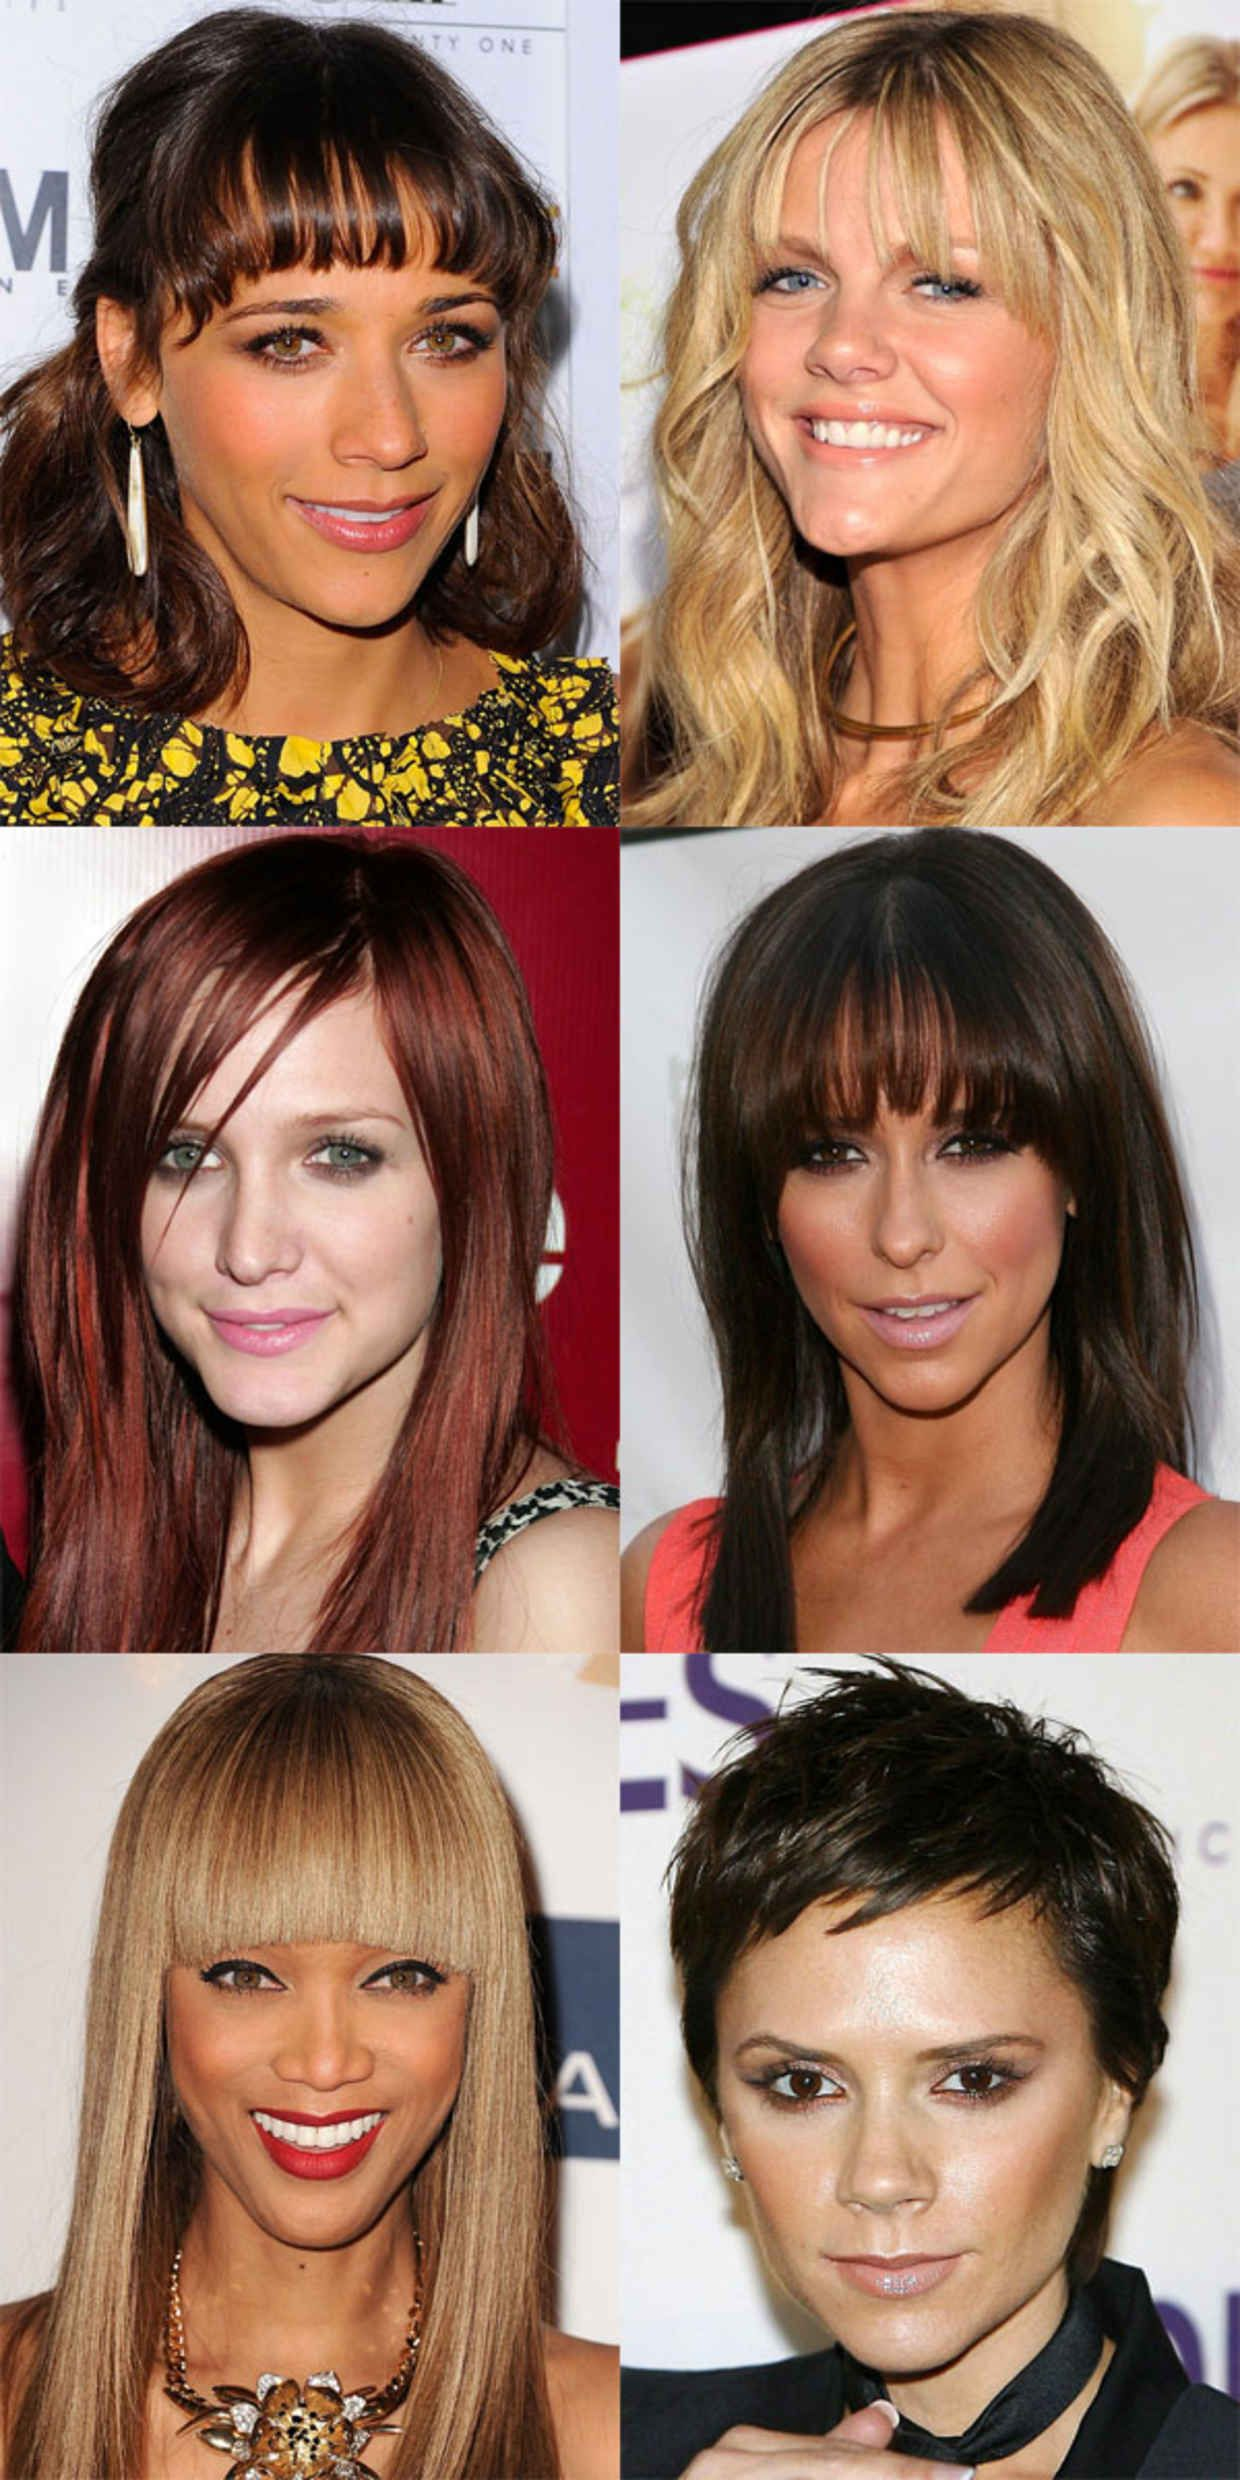 the best (and worst) bangs for inverted triangle faces